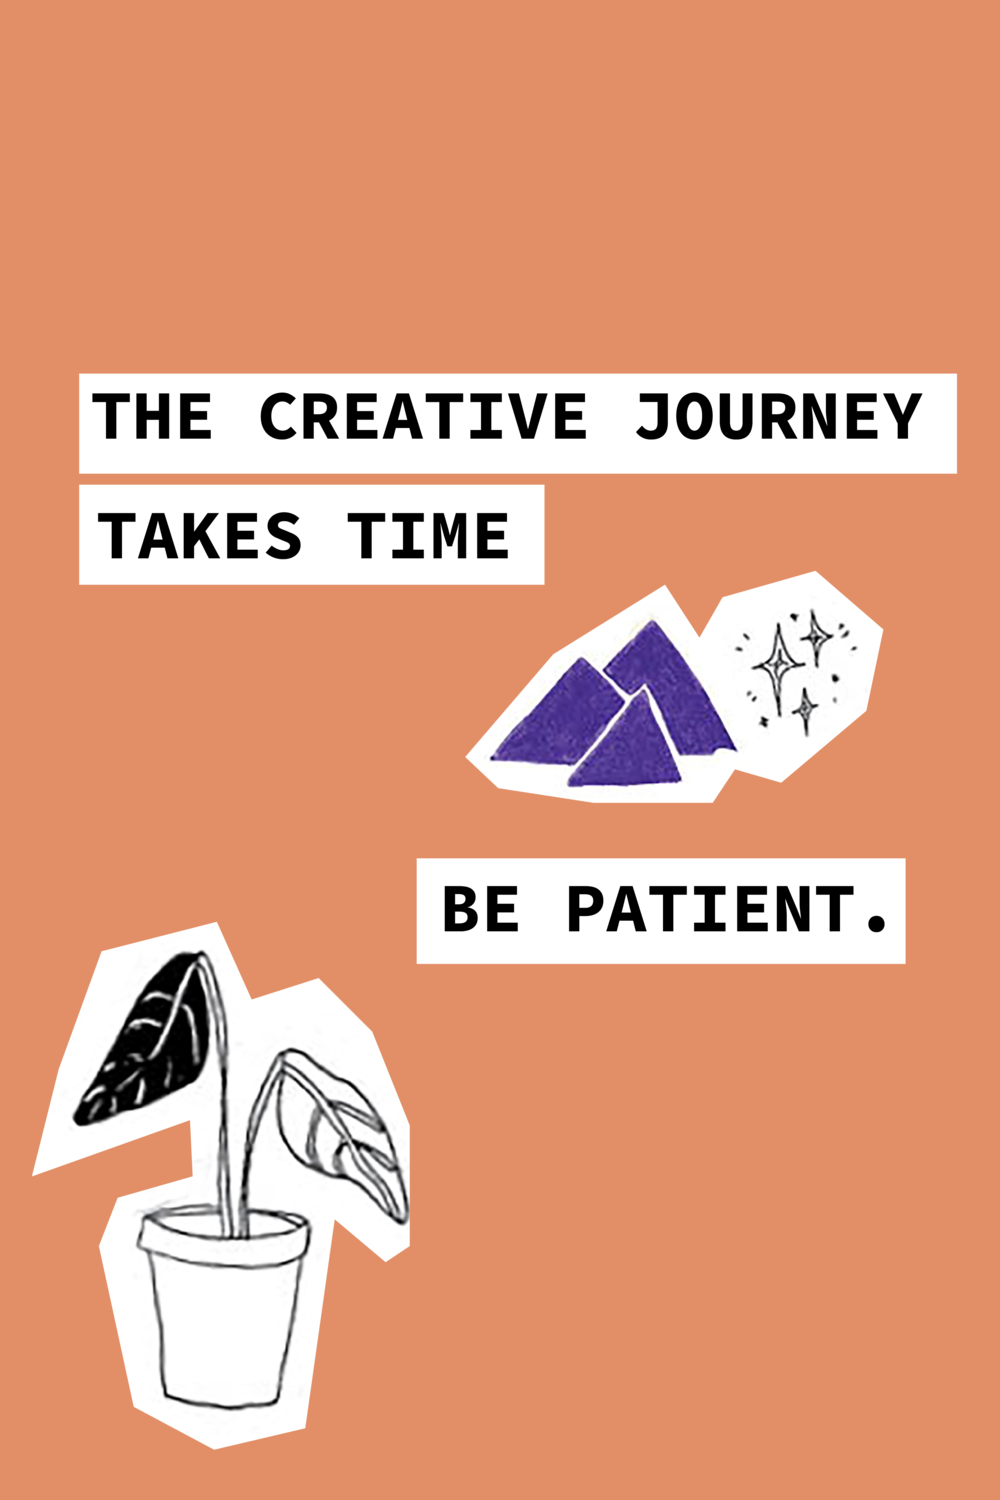 The Creative Journey Takes Time. Be Patient.